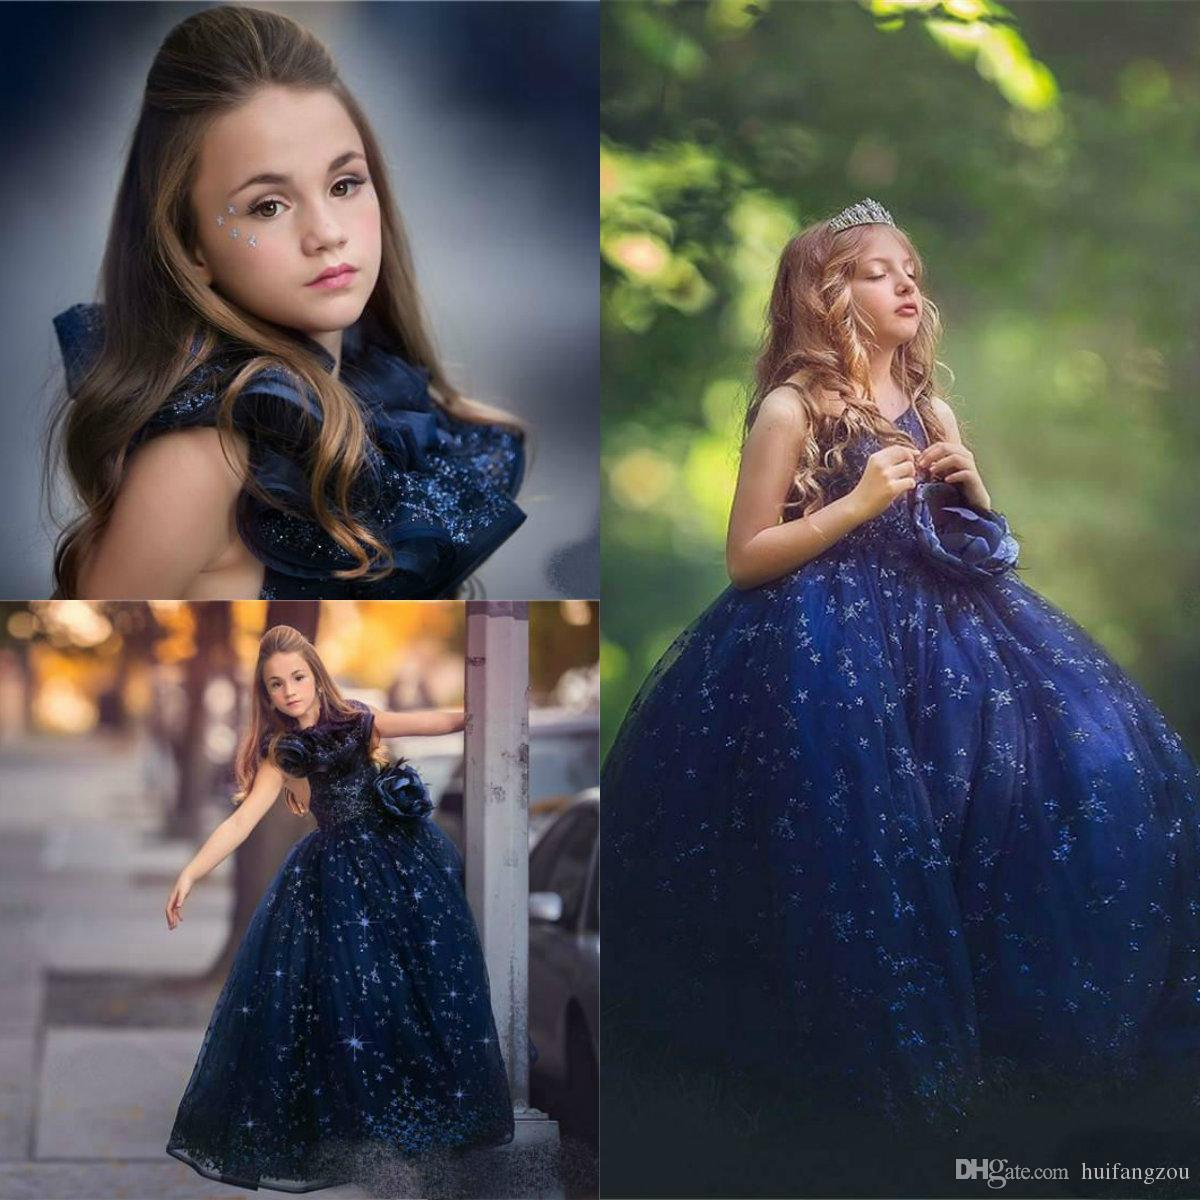 Luxury Royal Blue Girls Pageant Dresses 2019 Princess Ball Gown Sequins Ruffles Designer Flower Girl Dresses Kids Formal Prom Gowns